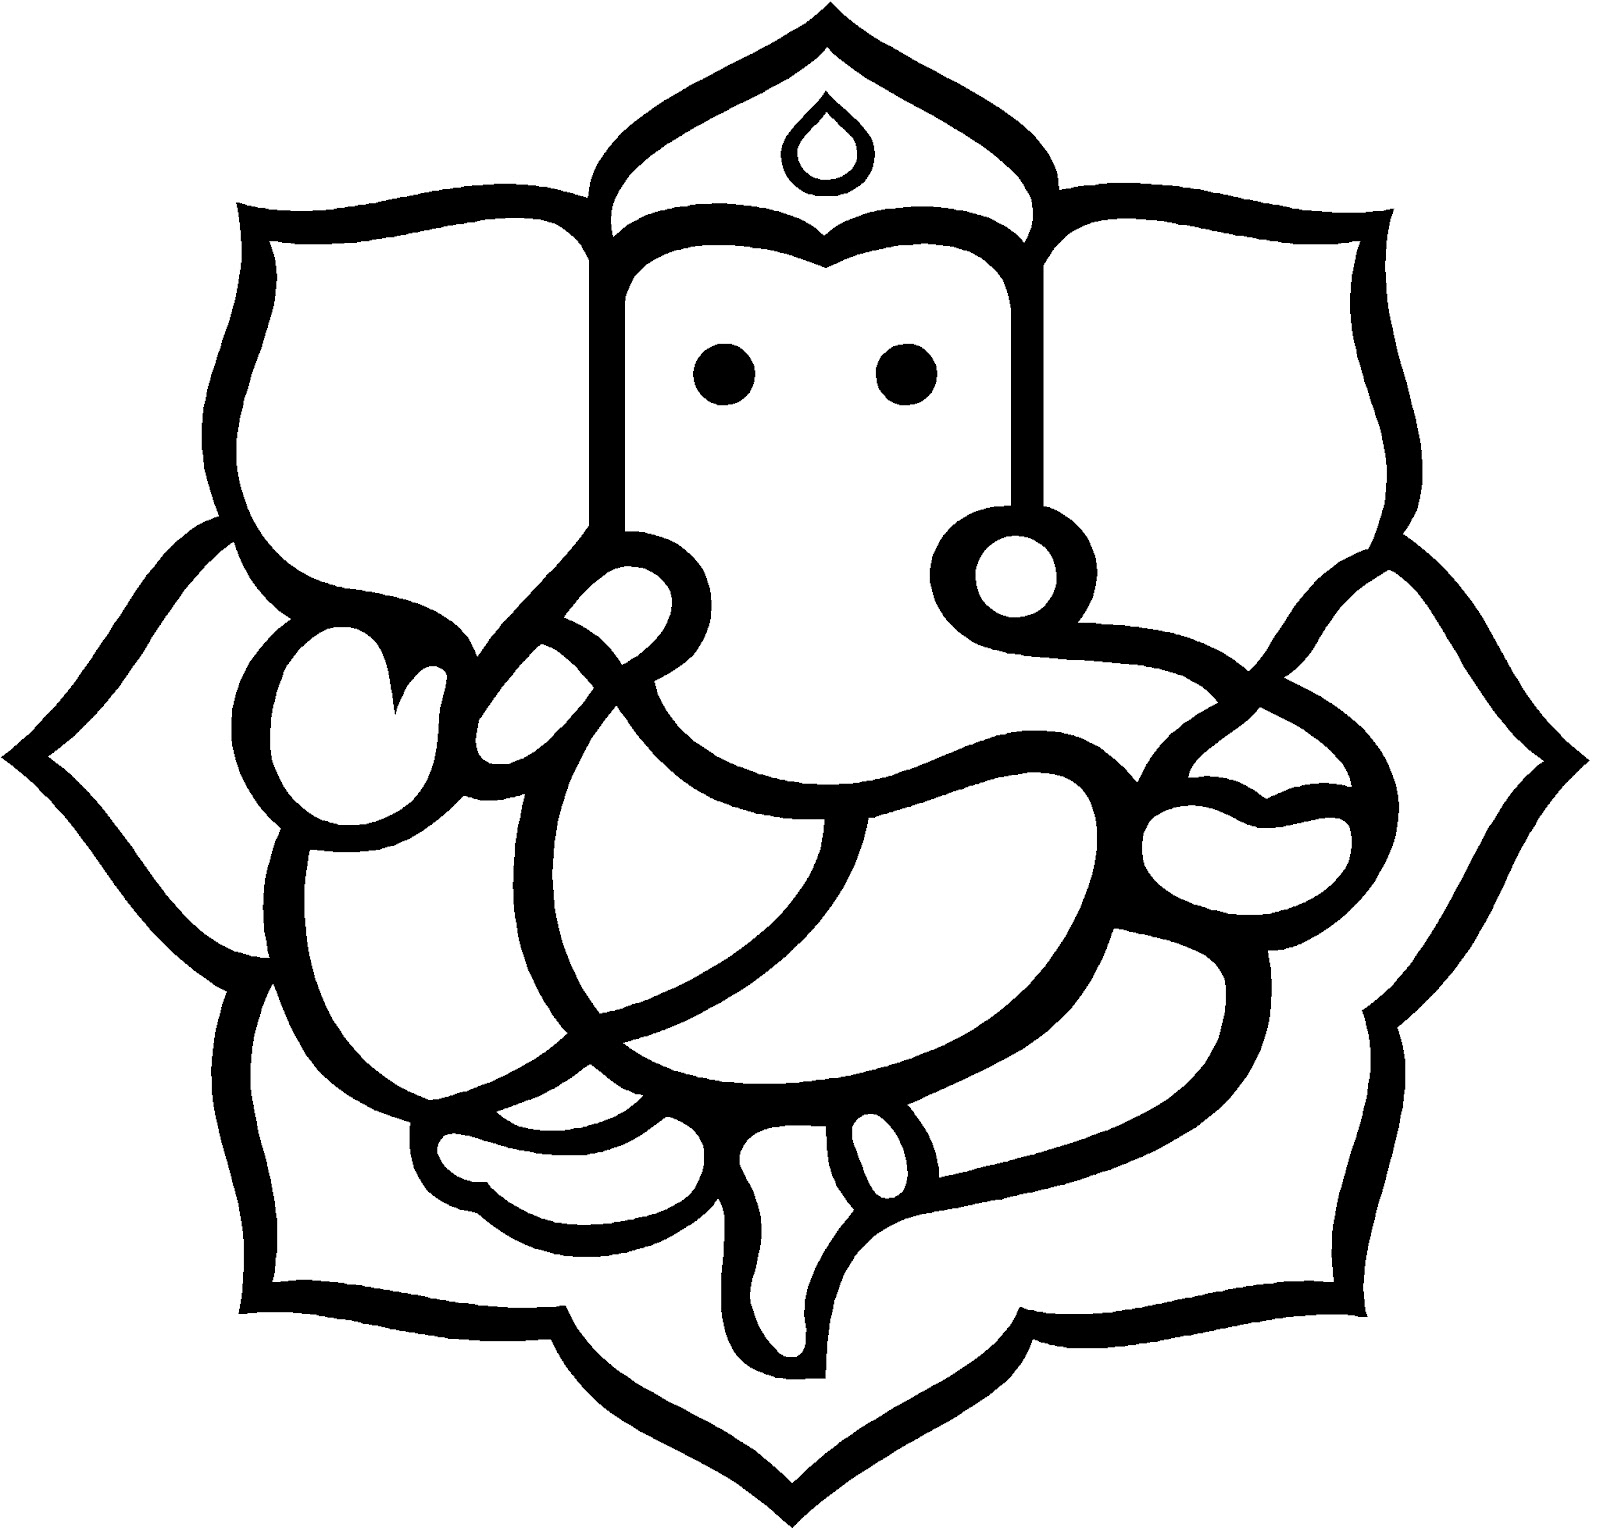 1600x1528 Ganpati Clipart Black And White amp Ganpati Clip Art Black And White